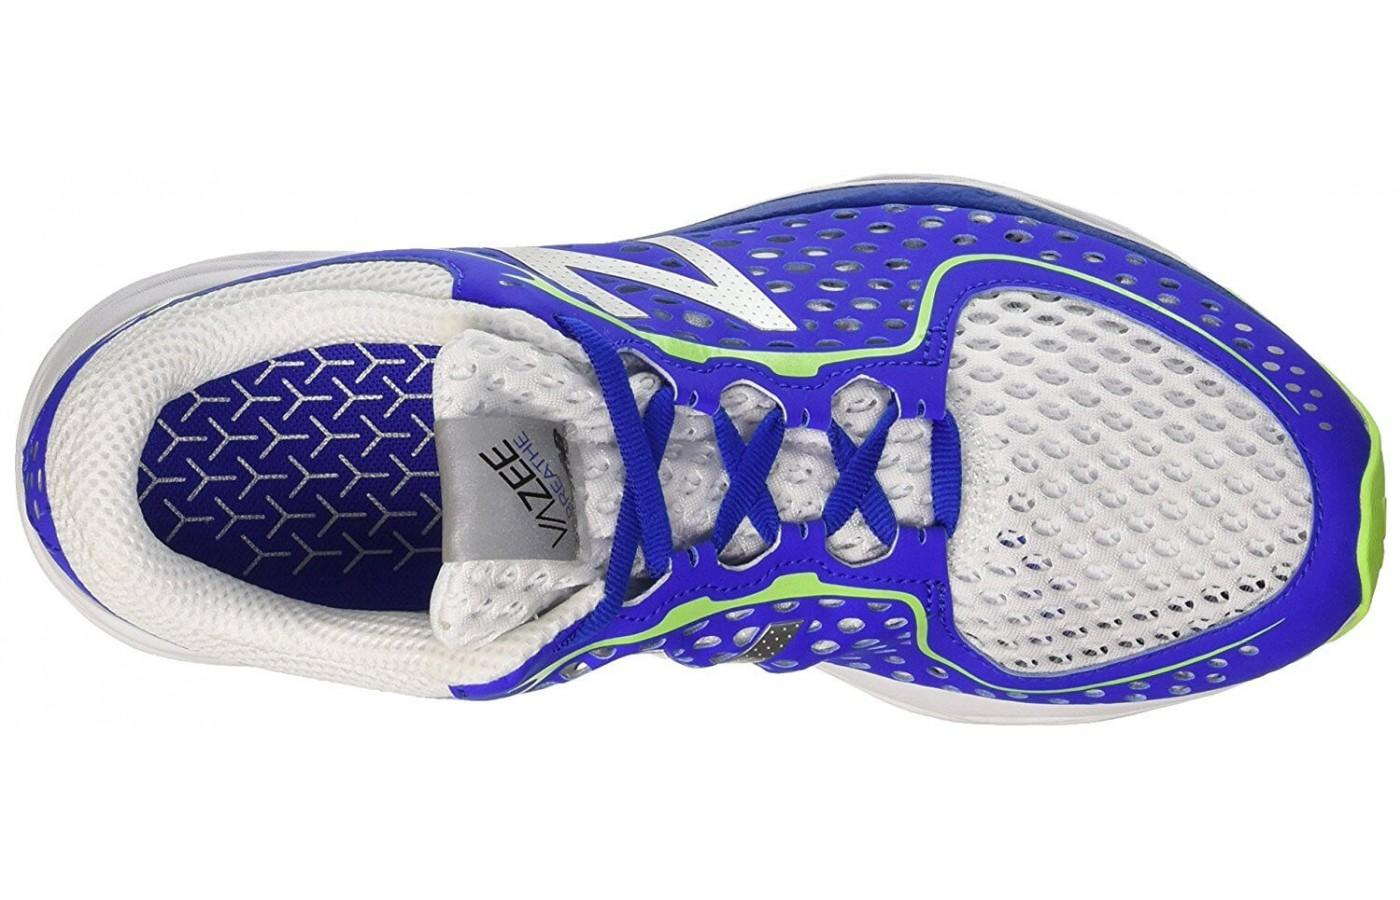 226533f2b2f11 The breathable upper is a key feature of the New Balance Vazee Breathe.